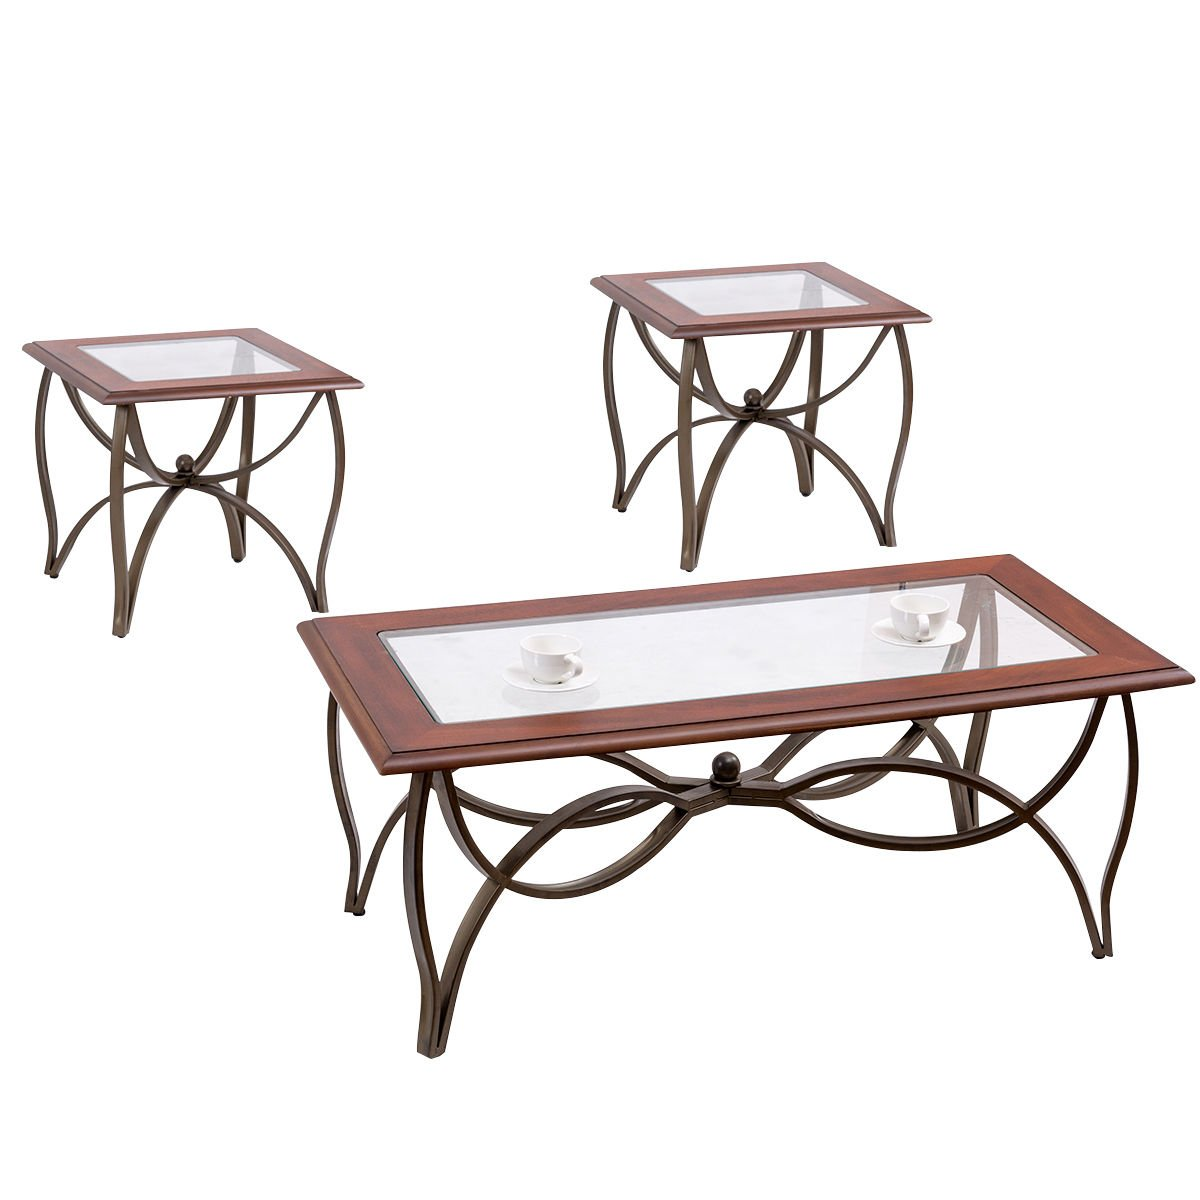 Tangkula Glass Coffee Table Set Occasional Cocktail Table Set Glass Top Coffee Table & 2 End Tables Set of 3